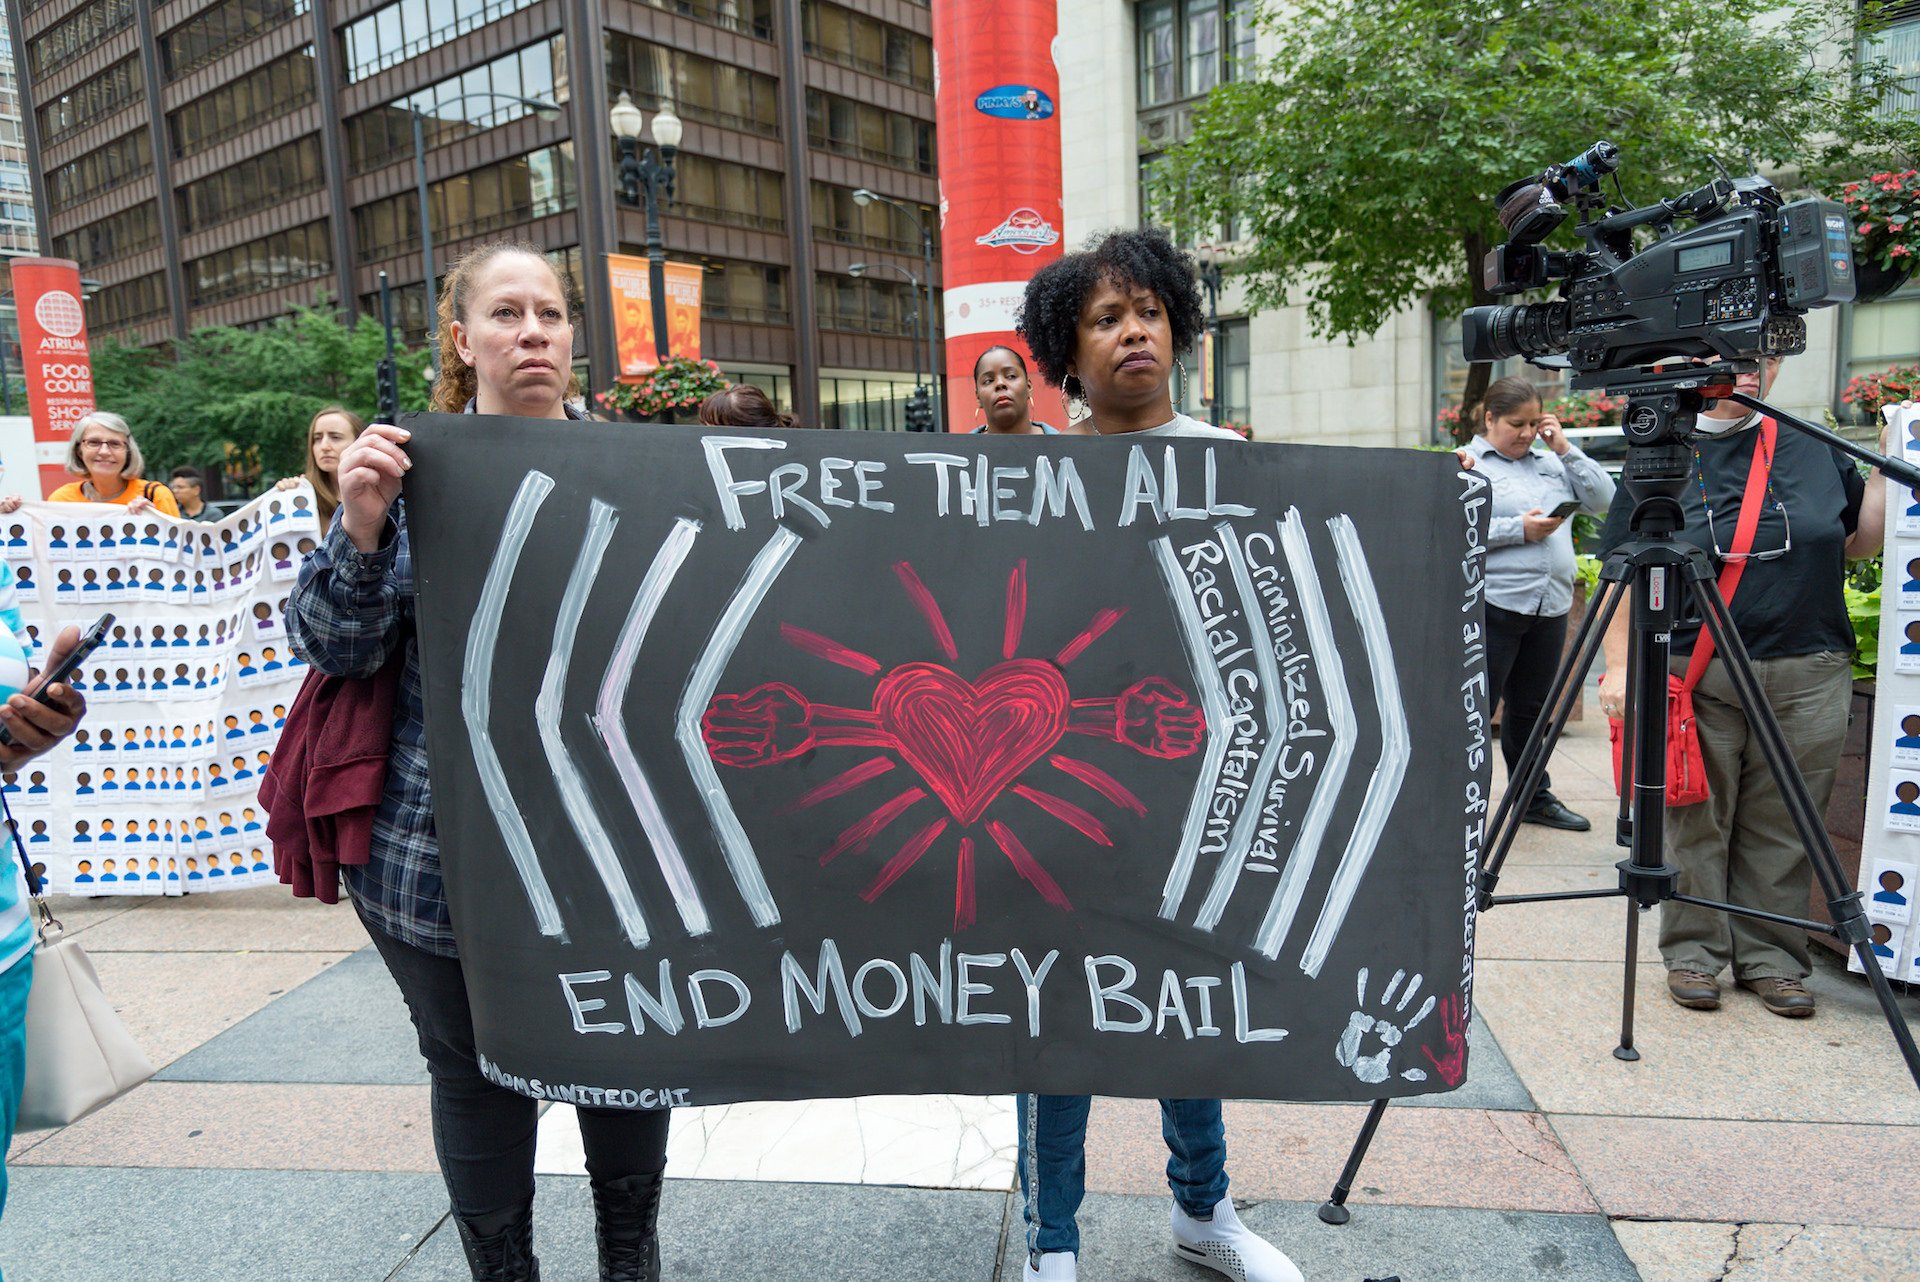 From the Rally to #EndMoneyBail. Image by Sarah-Ji.